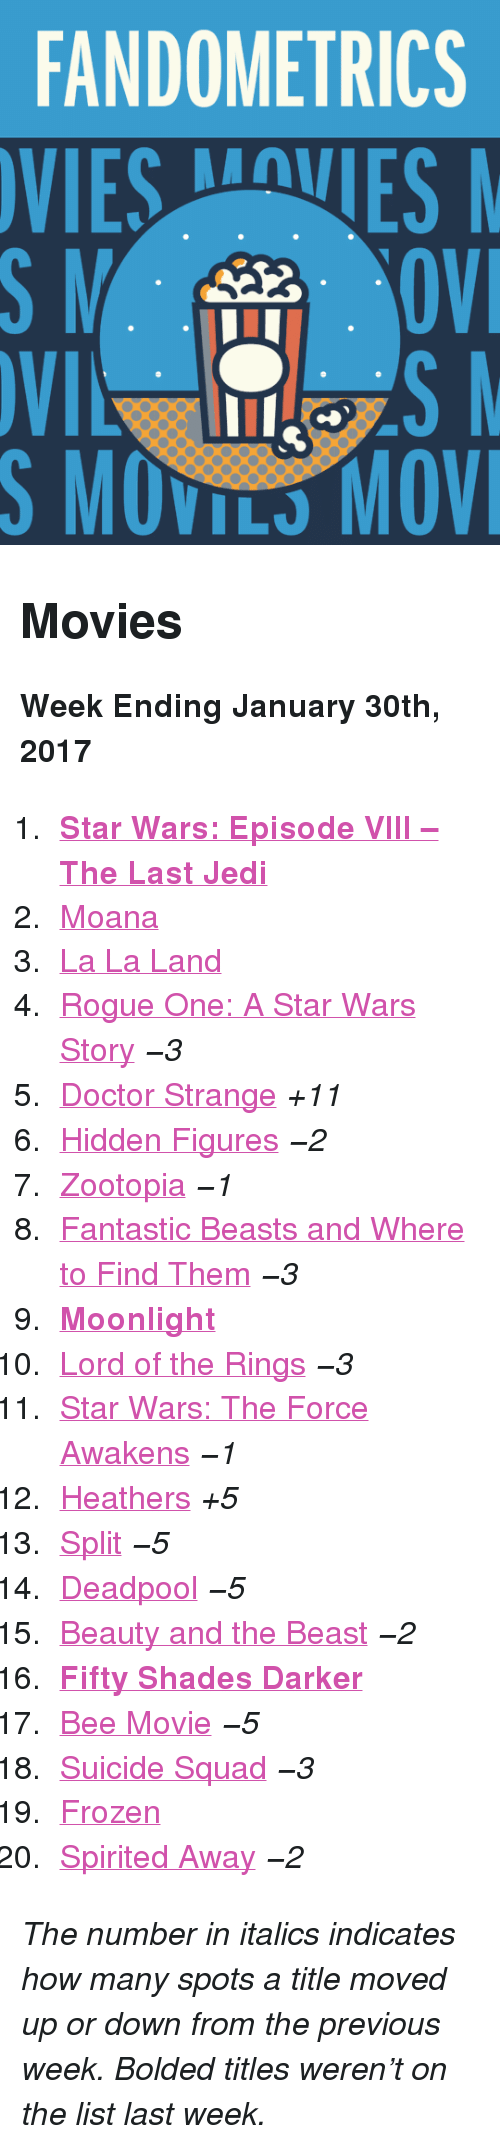 "Star Wars: The Force Awakens: FANDOMETRICS  VIESVES  S MOVILS MOV <h2>Movies</h2><p><b>Week Ending January 30th, 2017</b></p><ol><li><a href=""http://www.tumblr.com/search/the%20last%20jedi""><b>Star Wars: Episode VIII – The Last Jedi</b></a></li>  <li><a href=""http://www.tumblr.com/search/moana"">Moana</a></li>  <li><a href=""http://www.tumblr.com/search/la%20la%20land"">La La Land</a></li>  <li><a href=""http://www.tumblr.com/search/rogue%20one"">Rogue One: A Star Wars Story</a> <i>−3</i></li>  <li><a href=""http://www.tumblr.com/search/doctor%20strange"">Doctor Strange</a> <i>+11</i></li>  <li><a href=""http://www.tumblr.com/search/hidden%20figures"">Hidden Figures</a> <i>−2</i></li>  <li><a href=""http://www.tumblr.com/search/zootopia"">Zootopia</a> <i>−1</i></li>  <li><a href=""http://www.tumblr.com/search/fantastic%20beasts%20and%20where%20to%20find%20them"">Fantastic Beasts and Where to Find Them</a> <i>−3</i></li>  <li><a href=""http://www.tumblr.com/search/moonlight""><b>Moonlight</b></a></li>  <li><a href=""http://www.tumblr.com/search/lotr"">Lord of the Rings</a> <i>−3</i></li>  <li><a href=""http://www.tumblr.com/search/the%20force%20awakens"">Star Wars: The Force Awakens</a> <i>−1</i></li>  <li><a href=""http://www.tumblr.com/search/heathers"">Heathers</a> <i>+5</i></li>  <li><a href=""http://www.tumblr.com/search/split"">Split</a> <i>−5</i></li>  <li><a href=""http://www.tumblr.com/search/deadpool"">Deadpool</a> <i>−5</i></li>  <li><a href=""http://www.tumblr.com/search/beauty%20and%20the%20beast"">Beauty and the Beast</a> <i>−2</i></li>  <li><a href=""http://www.tumblr.com/search/fifty%20shades%20darker""><b>Fifty Shades Darker</b></a></li>  <li><a href=""http://www.tumblr.com/search/bee%20movie"">Bee Movie</a> <i>−5</i></li>  <li><a href=""http://www.tumblr.com/search/suicide%20squad"">Suicide Squad</a> <i>−3</i></li>  <li><a href=""http://www.tumblr.com/search/frozen"">Frozen</a></li>  <li><a href=""http://www.tumblr.com/search/spirited%20away"">Spirited Away</a> <i>−2</i></li></ol><p><i>The number in italics indicates how many spots a title moved up or down from the previous week. Bolded titles weren't on the list last week.</i></p>"